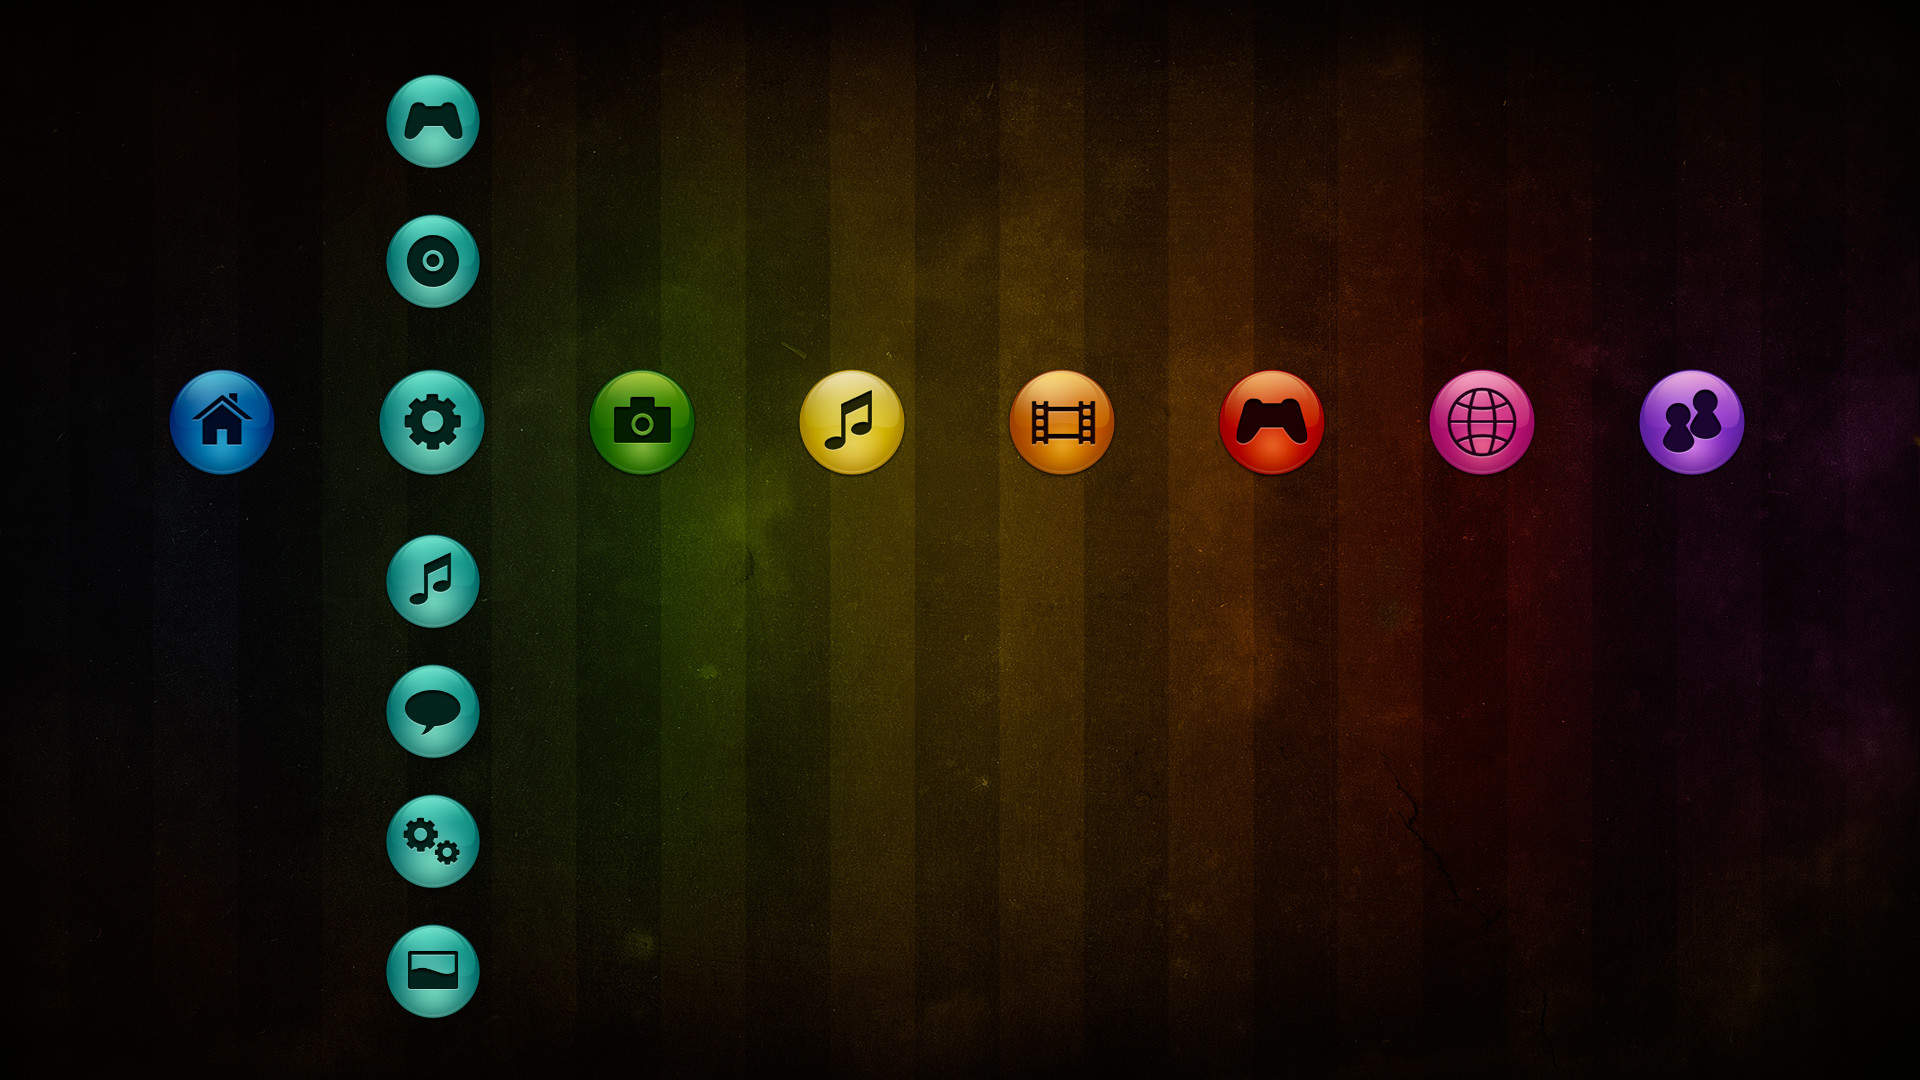 Playstation Colors Ps3 Theme Desktop Wallpapers High - Ps3 Background - HD Wallpaper